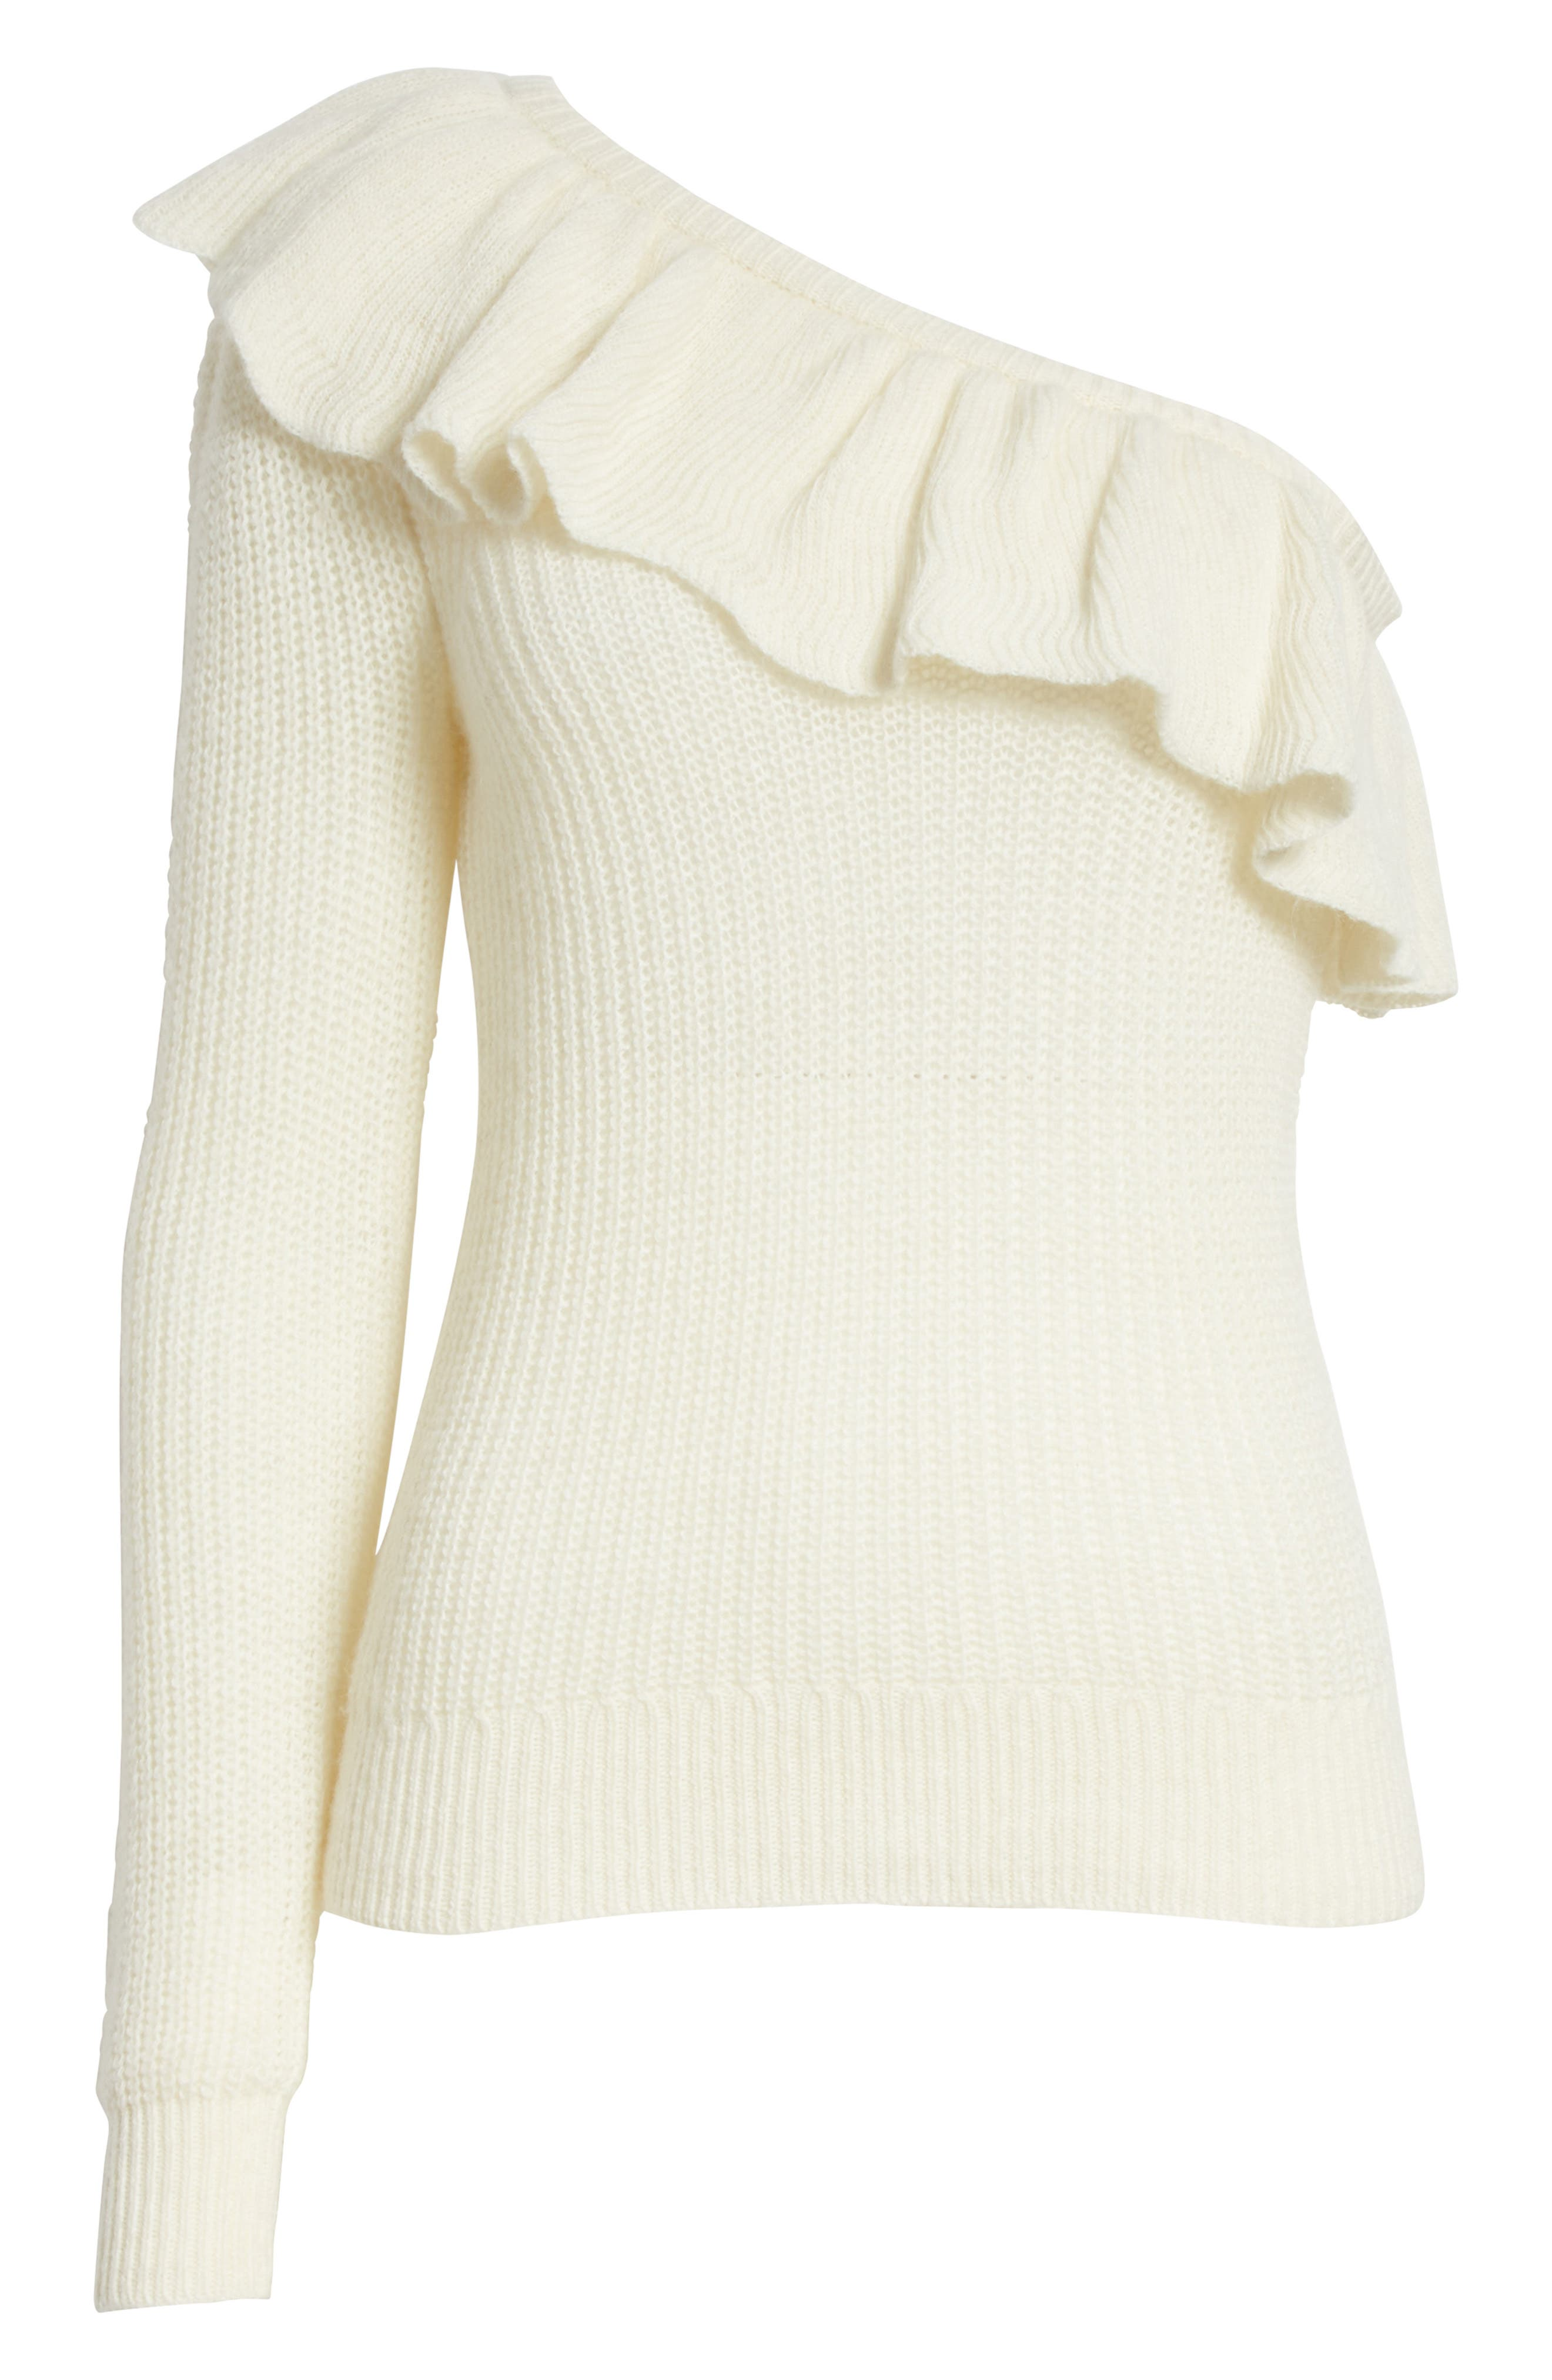 One-Shoulder Ruffle Sweater,                             Alternate thumbnail 6, color,                             907